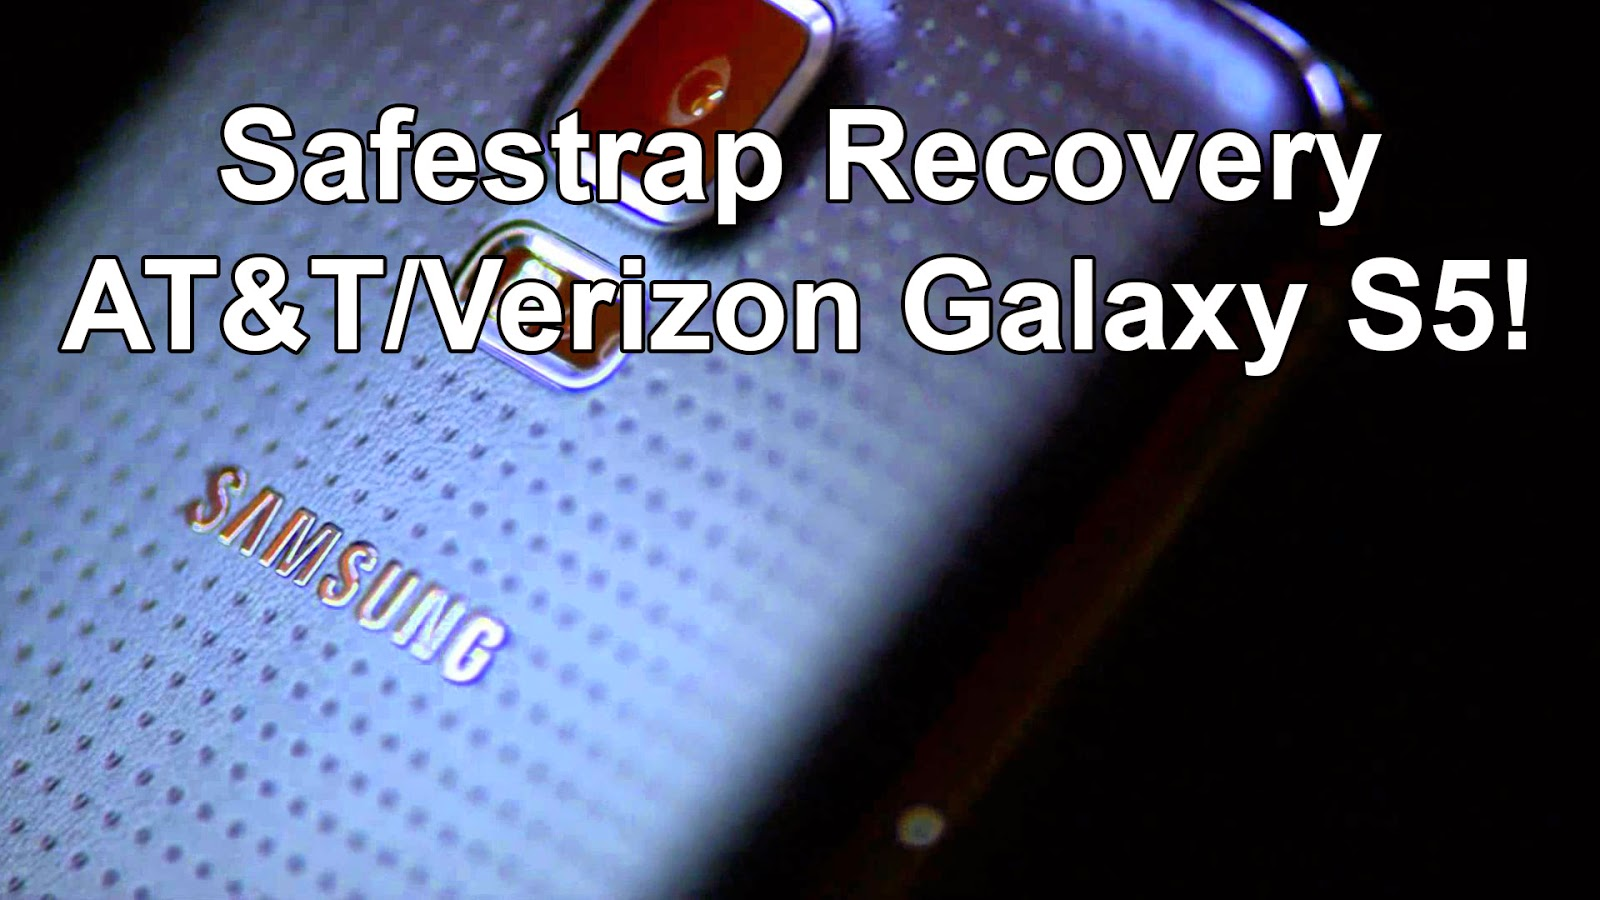 Safestrap Recovery for AT&T/Verizon Galaxy S5